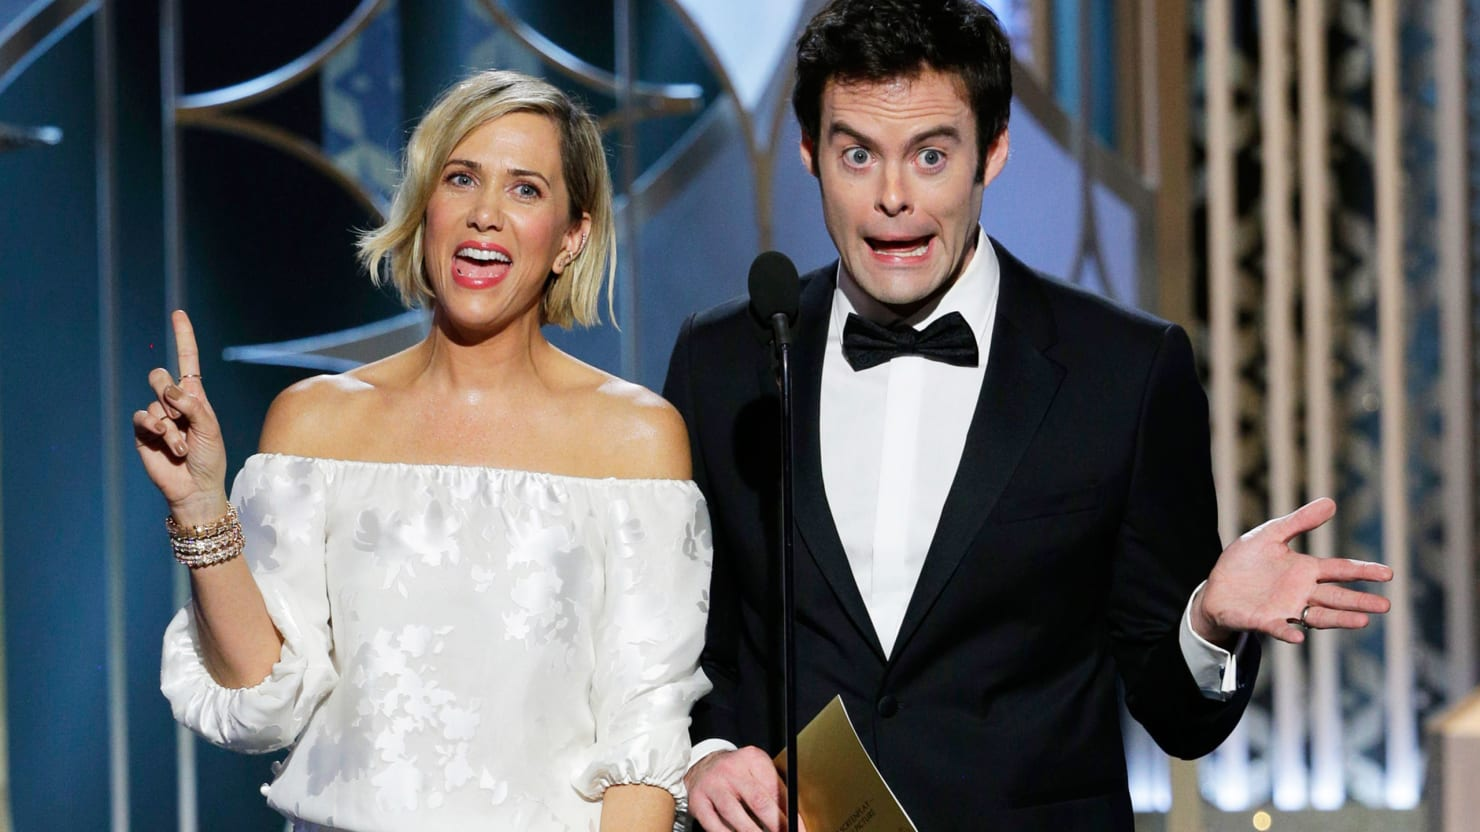 The Best Golden Globes Moments: All Hail Amy Poehler and Tina Fey